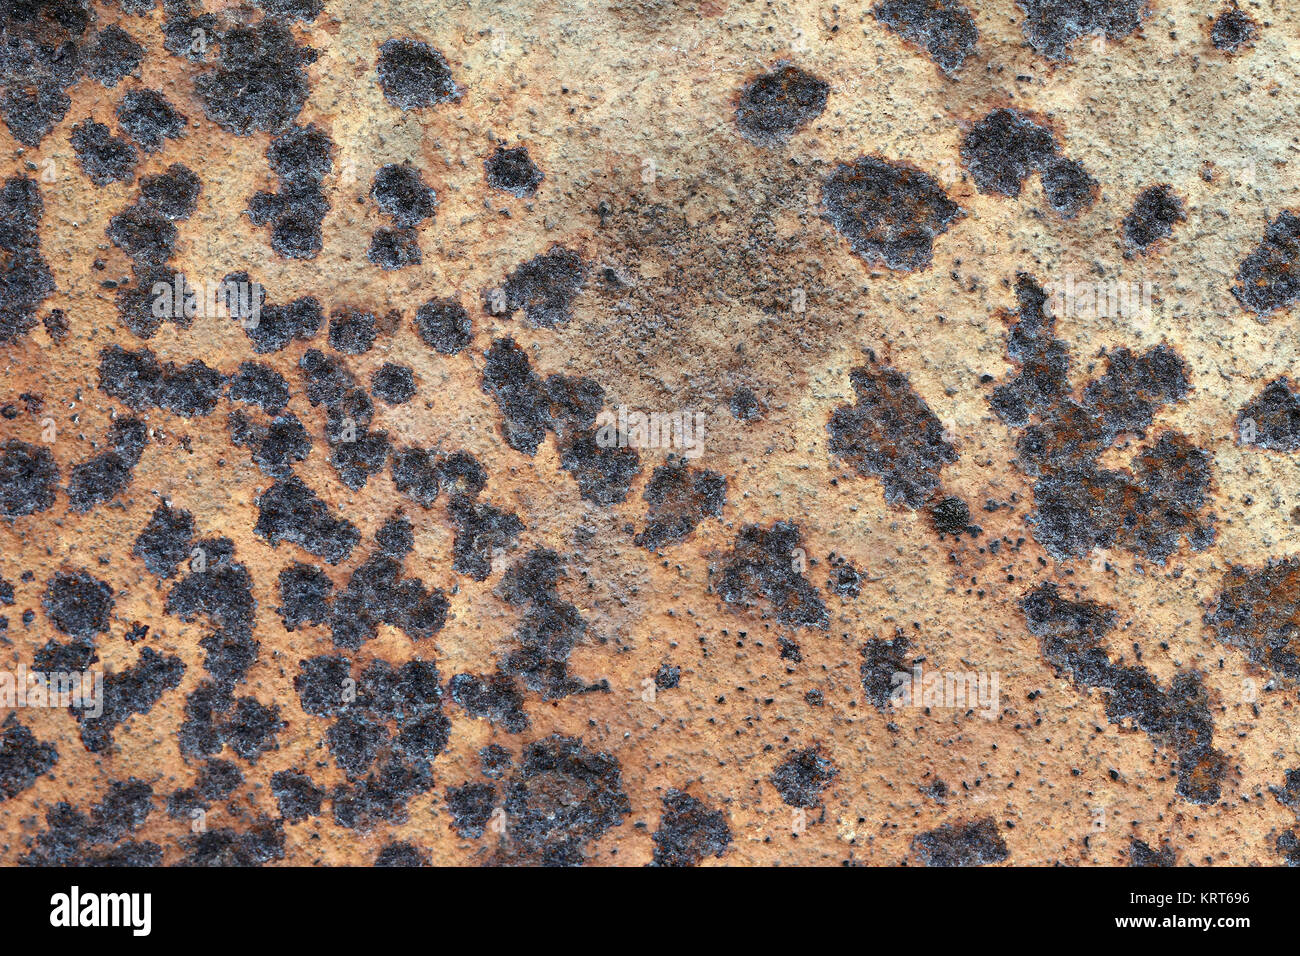 Old corroded surface of the metal plate - Stock Image